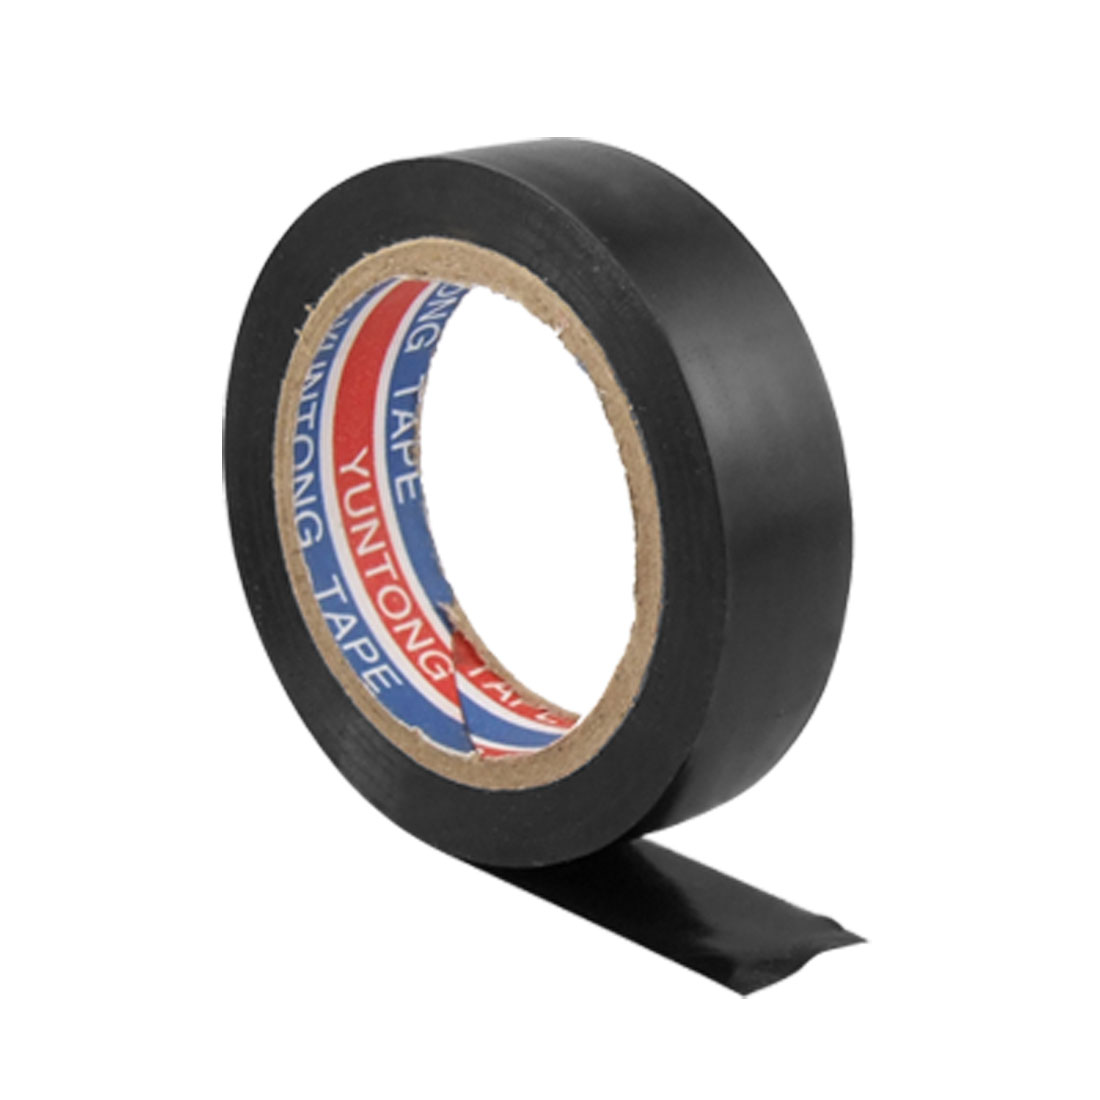 Electrician Black PVC Plastic Adhesive Insulation Tape